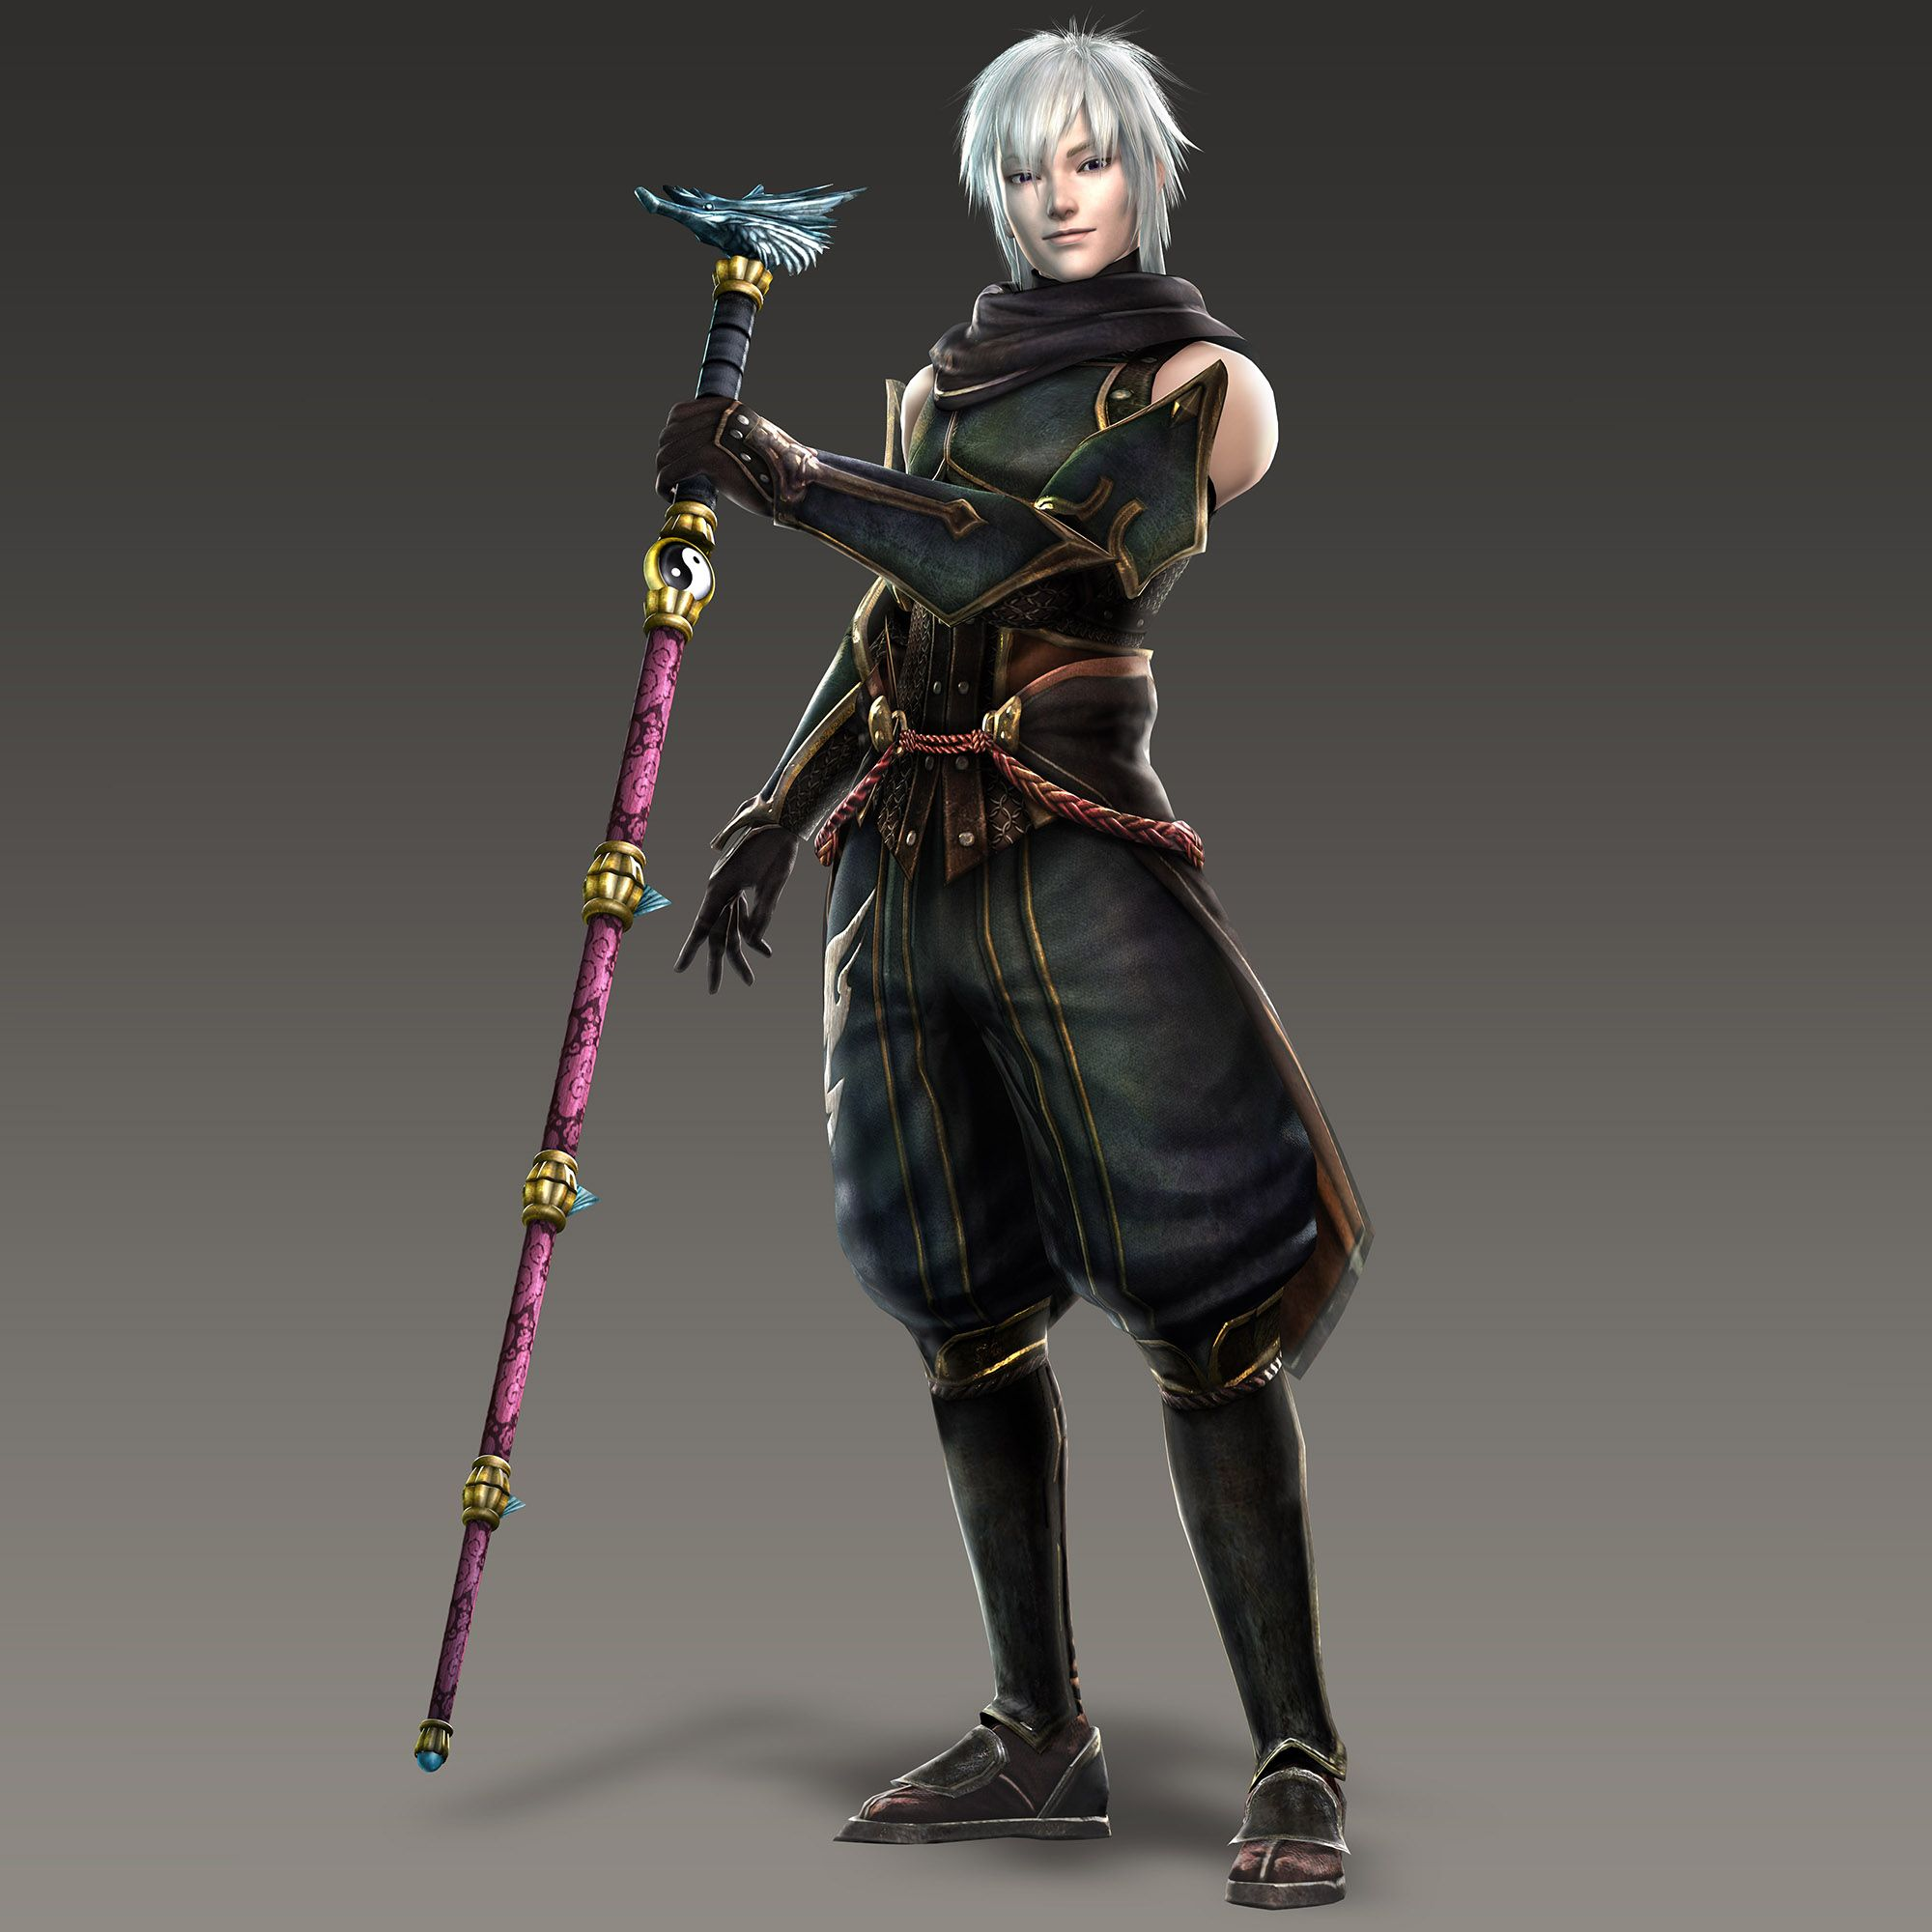 Warriors Orochi 3 Ultimate Character Artwork